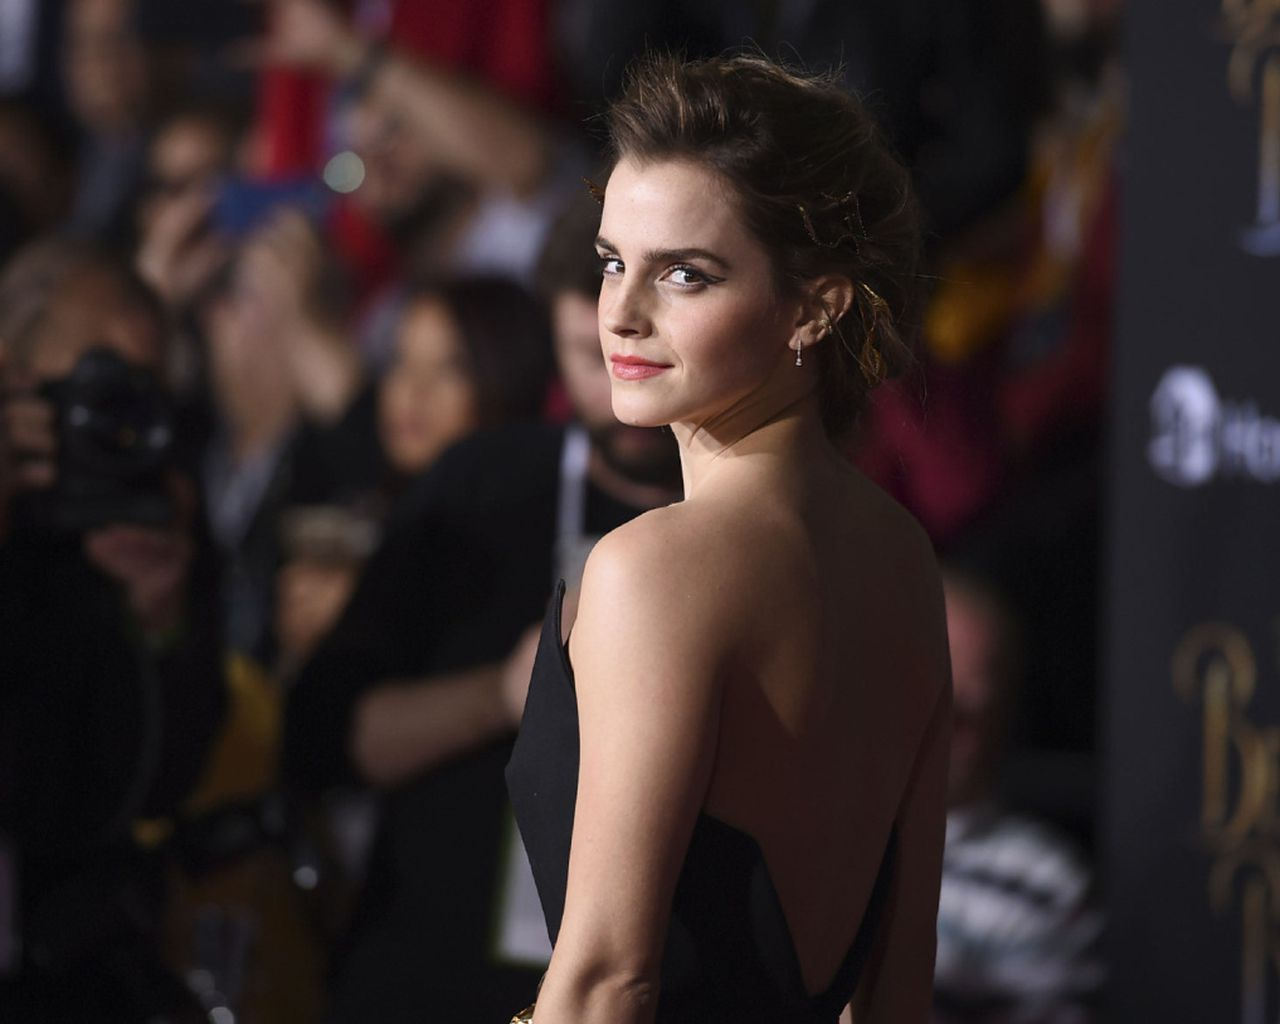 Emma Watson And Her New Tits photo 17